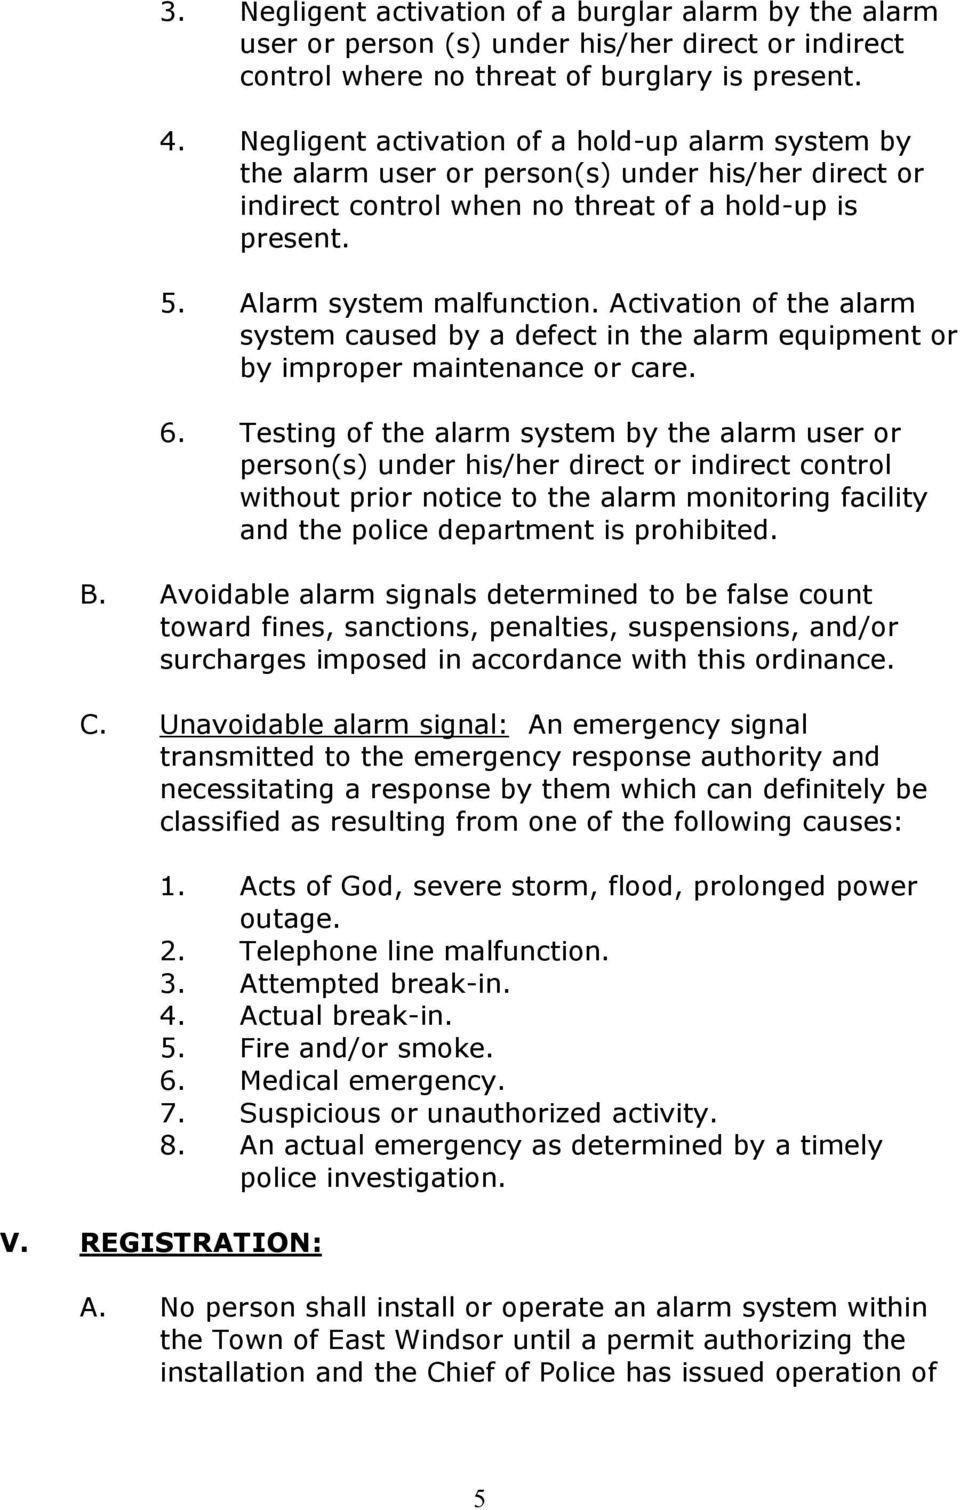 Activation of the alarm system caused by a defect in the alarm equipment or by improper maintenance or care. 6.